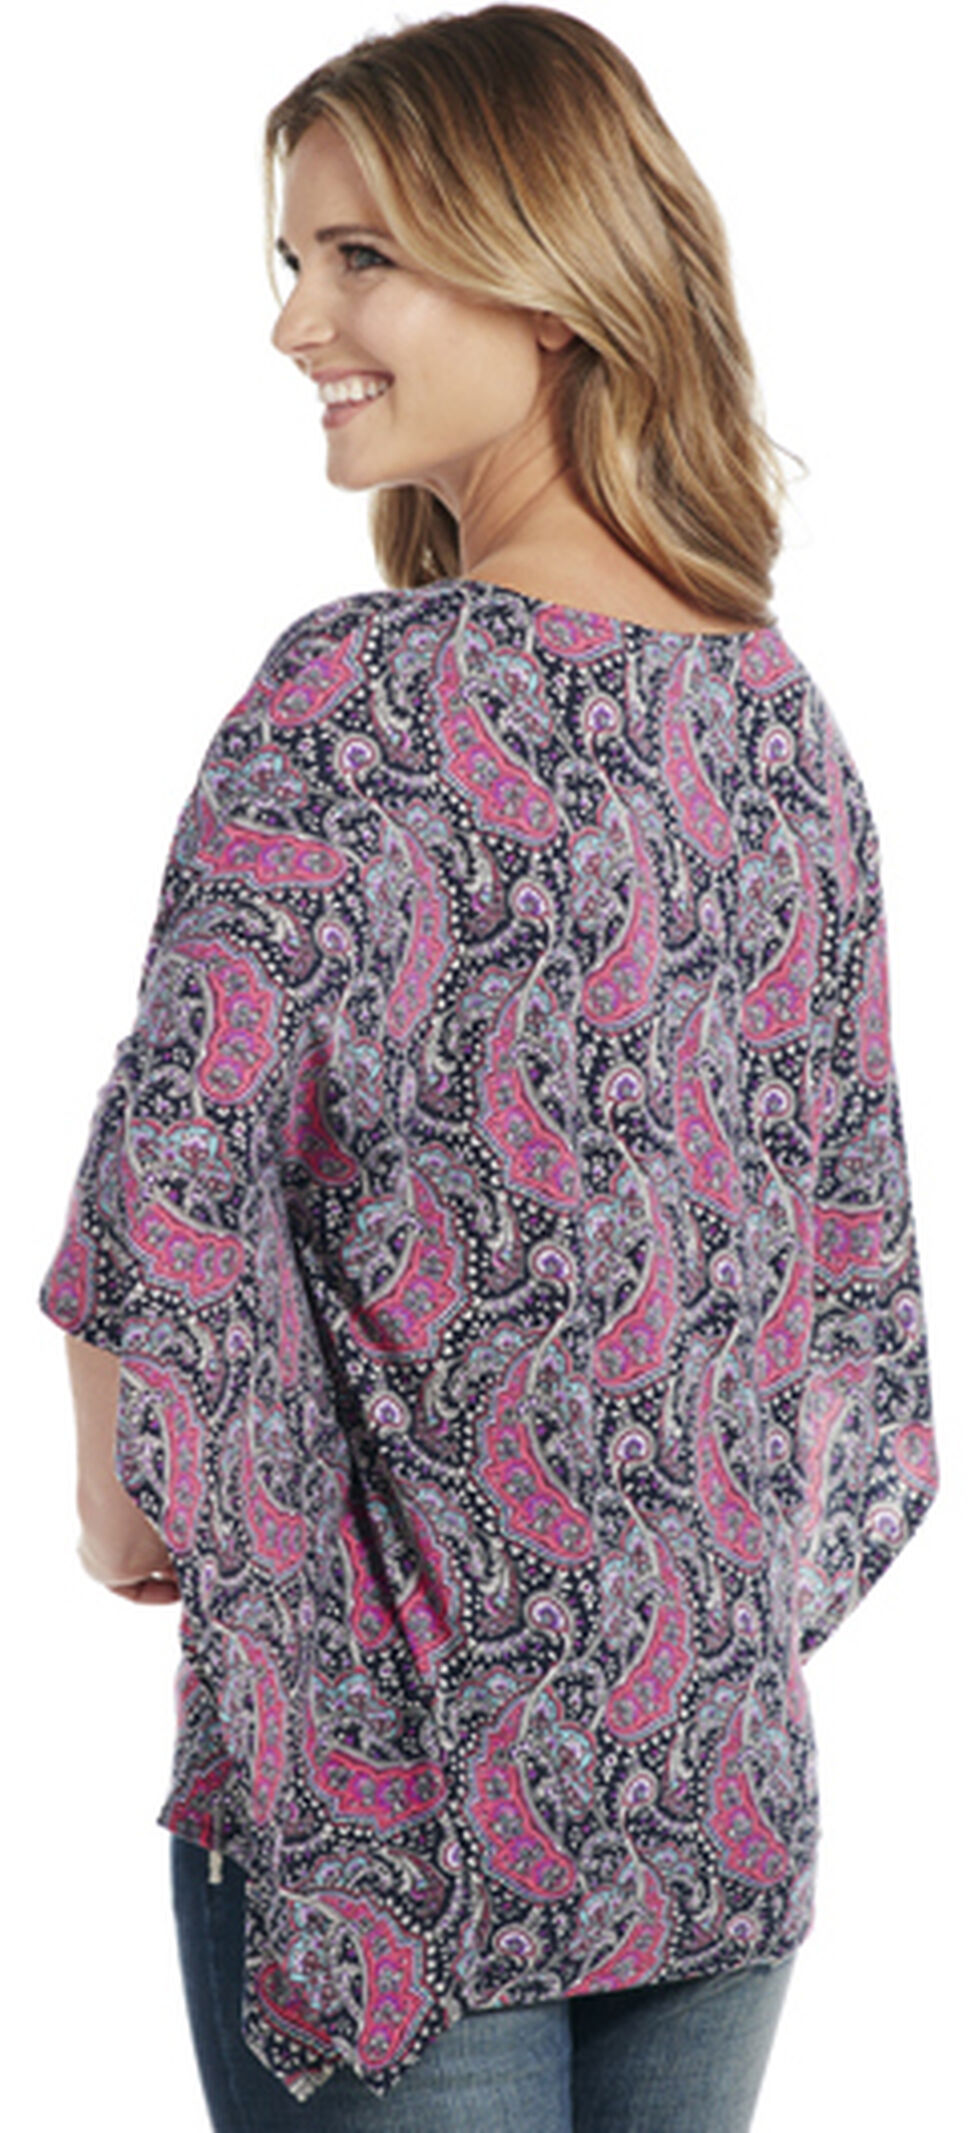 Cowgirl Up Women's Print Poncho, Black, hi-res